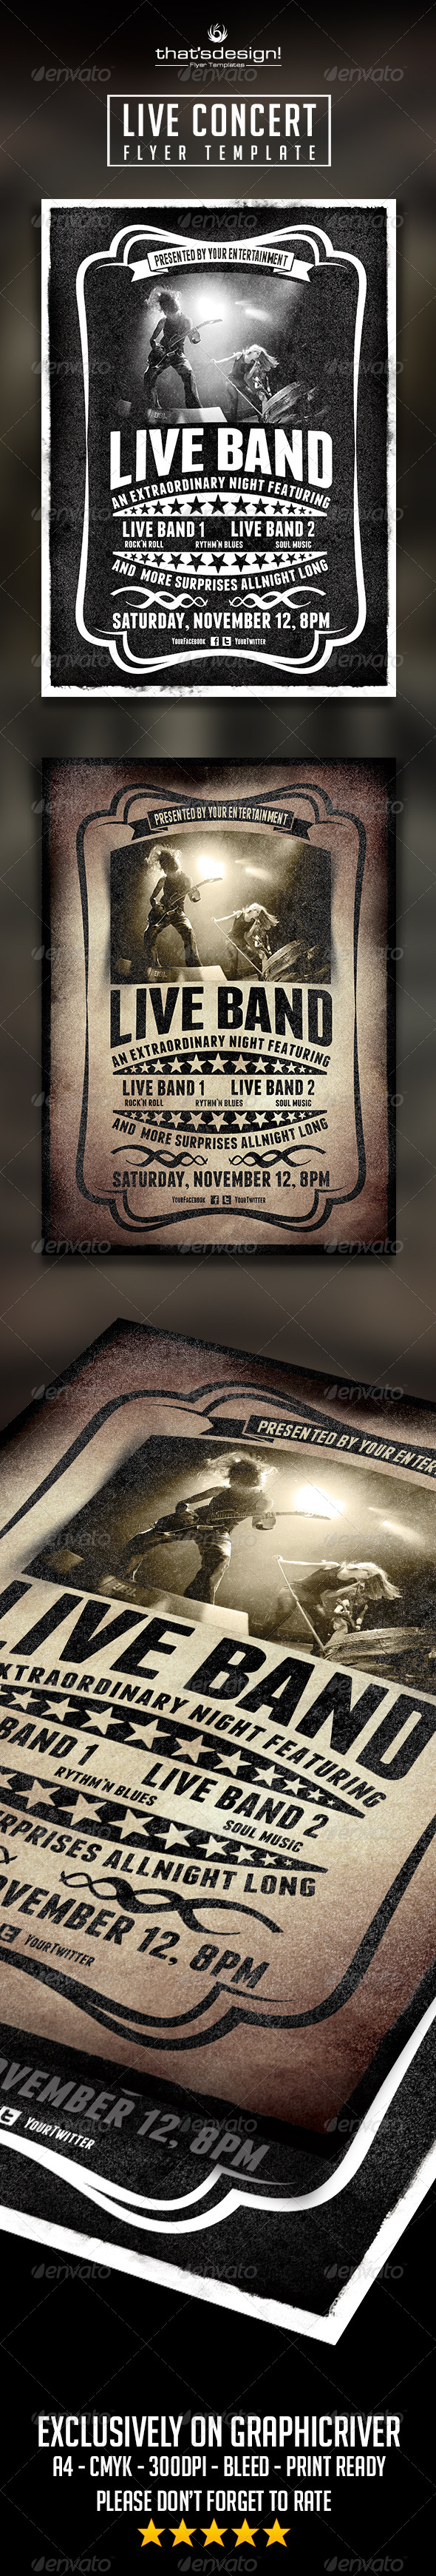 Live Concert  Flyer Templates 2x1 - Concerts Events